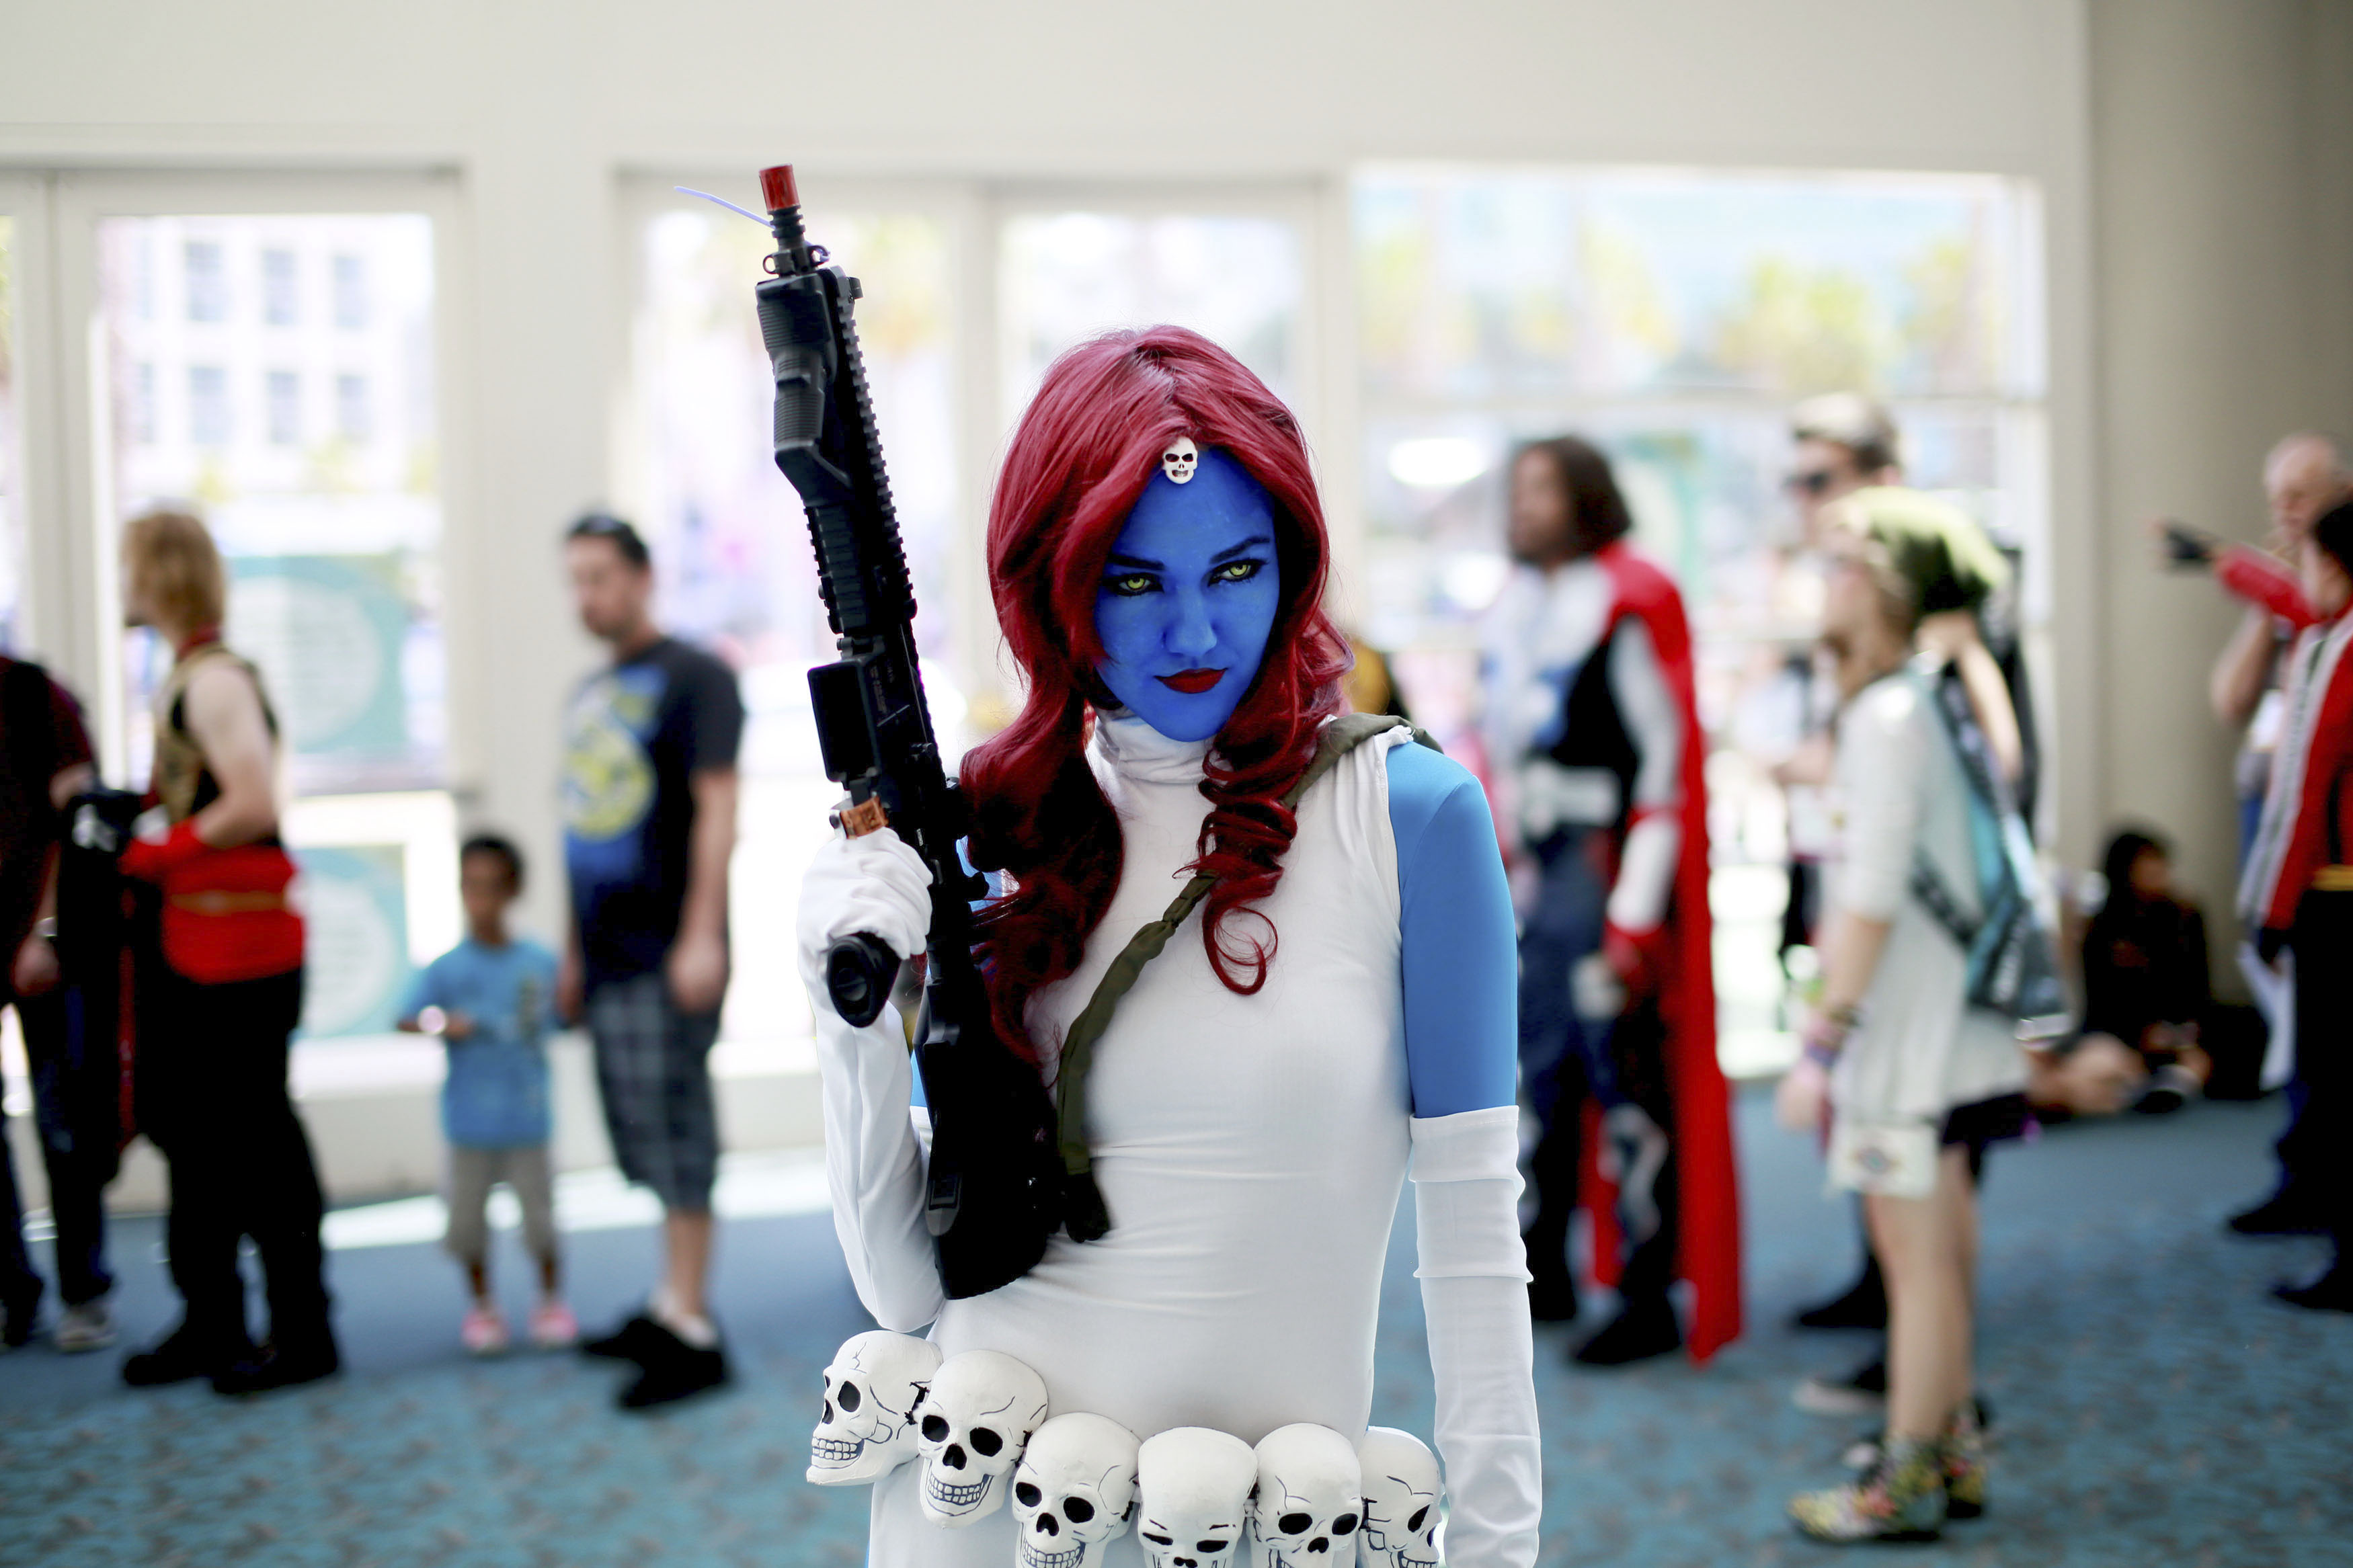 Allie Shaughnessy, who is dressed as Mystique, poses during the 2014 Comic-Con International Convention in San Diego on July 24, 2014.